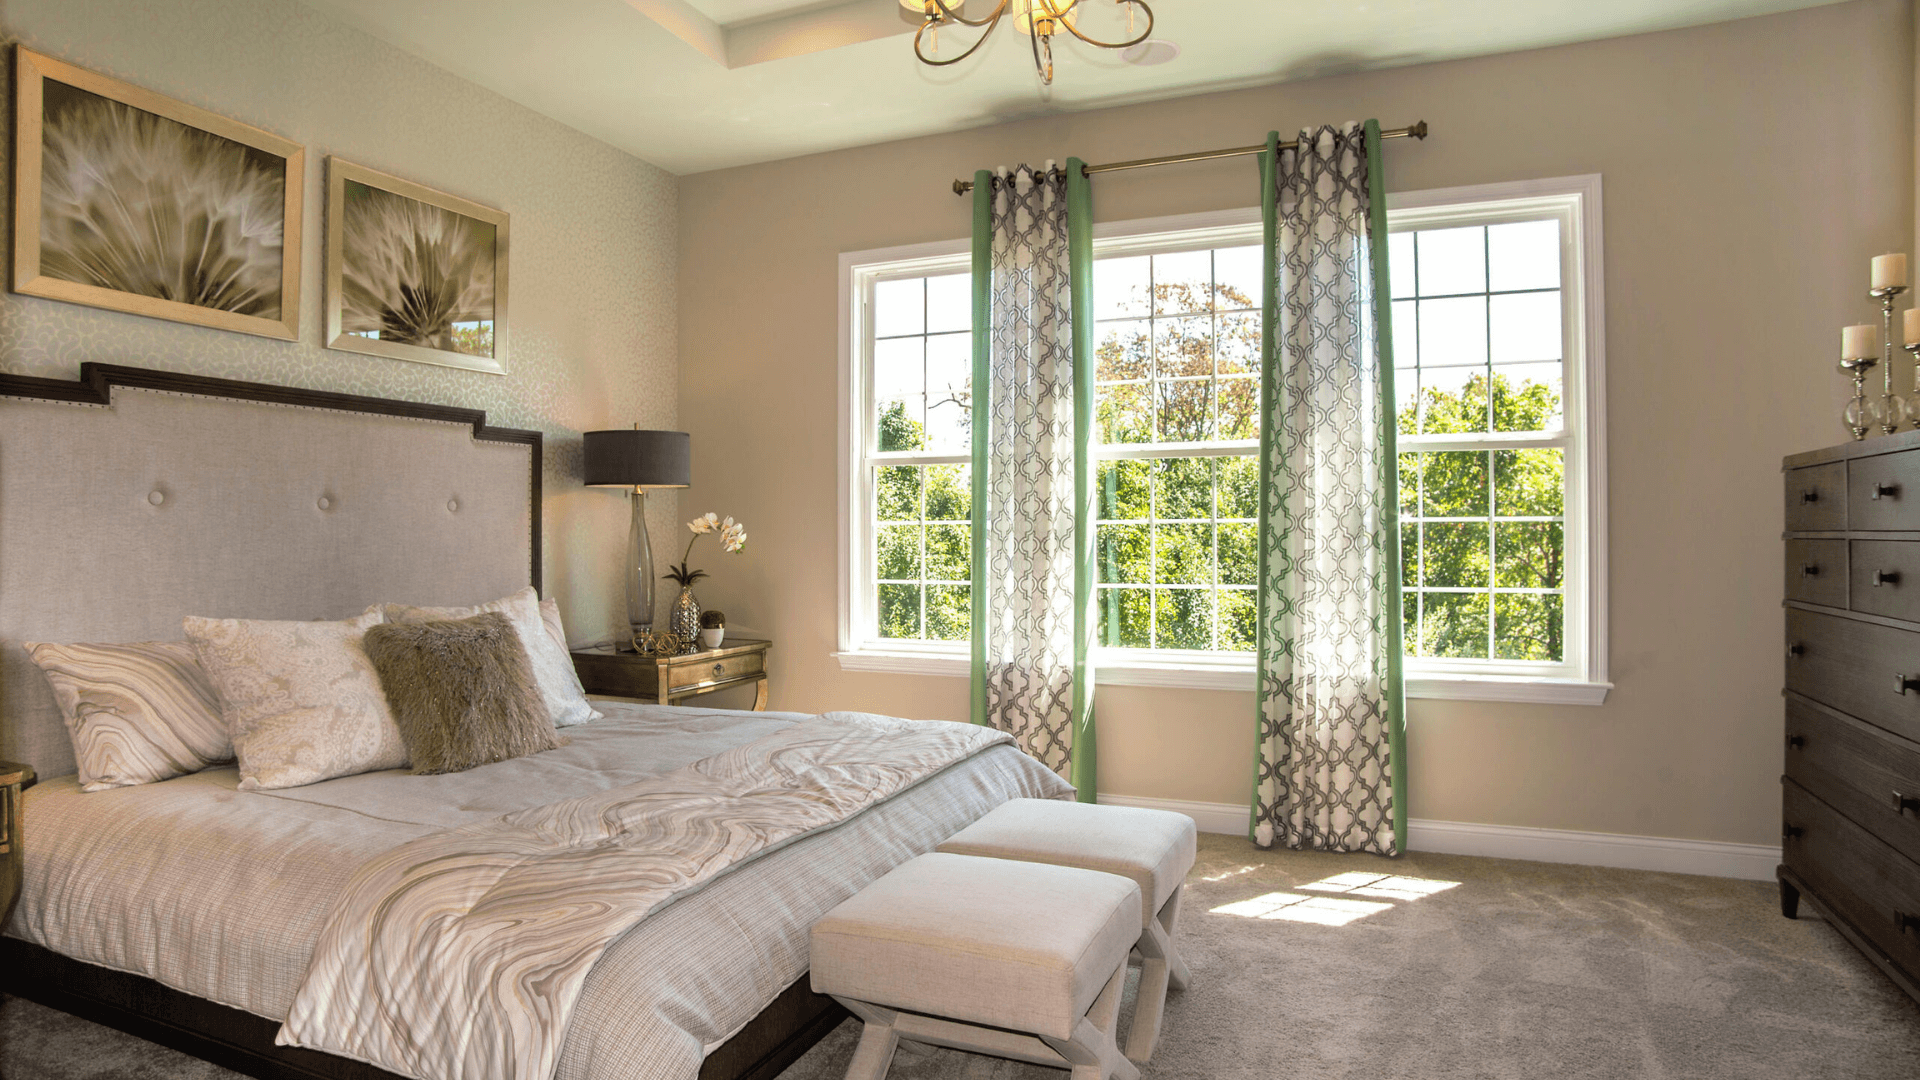 A master bedroom inside a new home at Rivers Pointe Villas riverview community